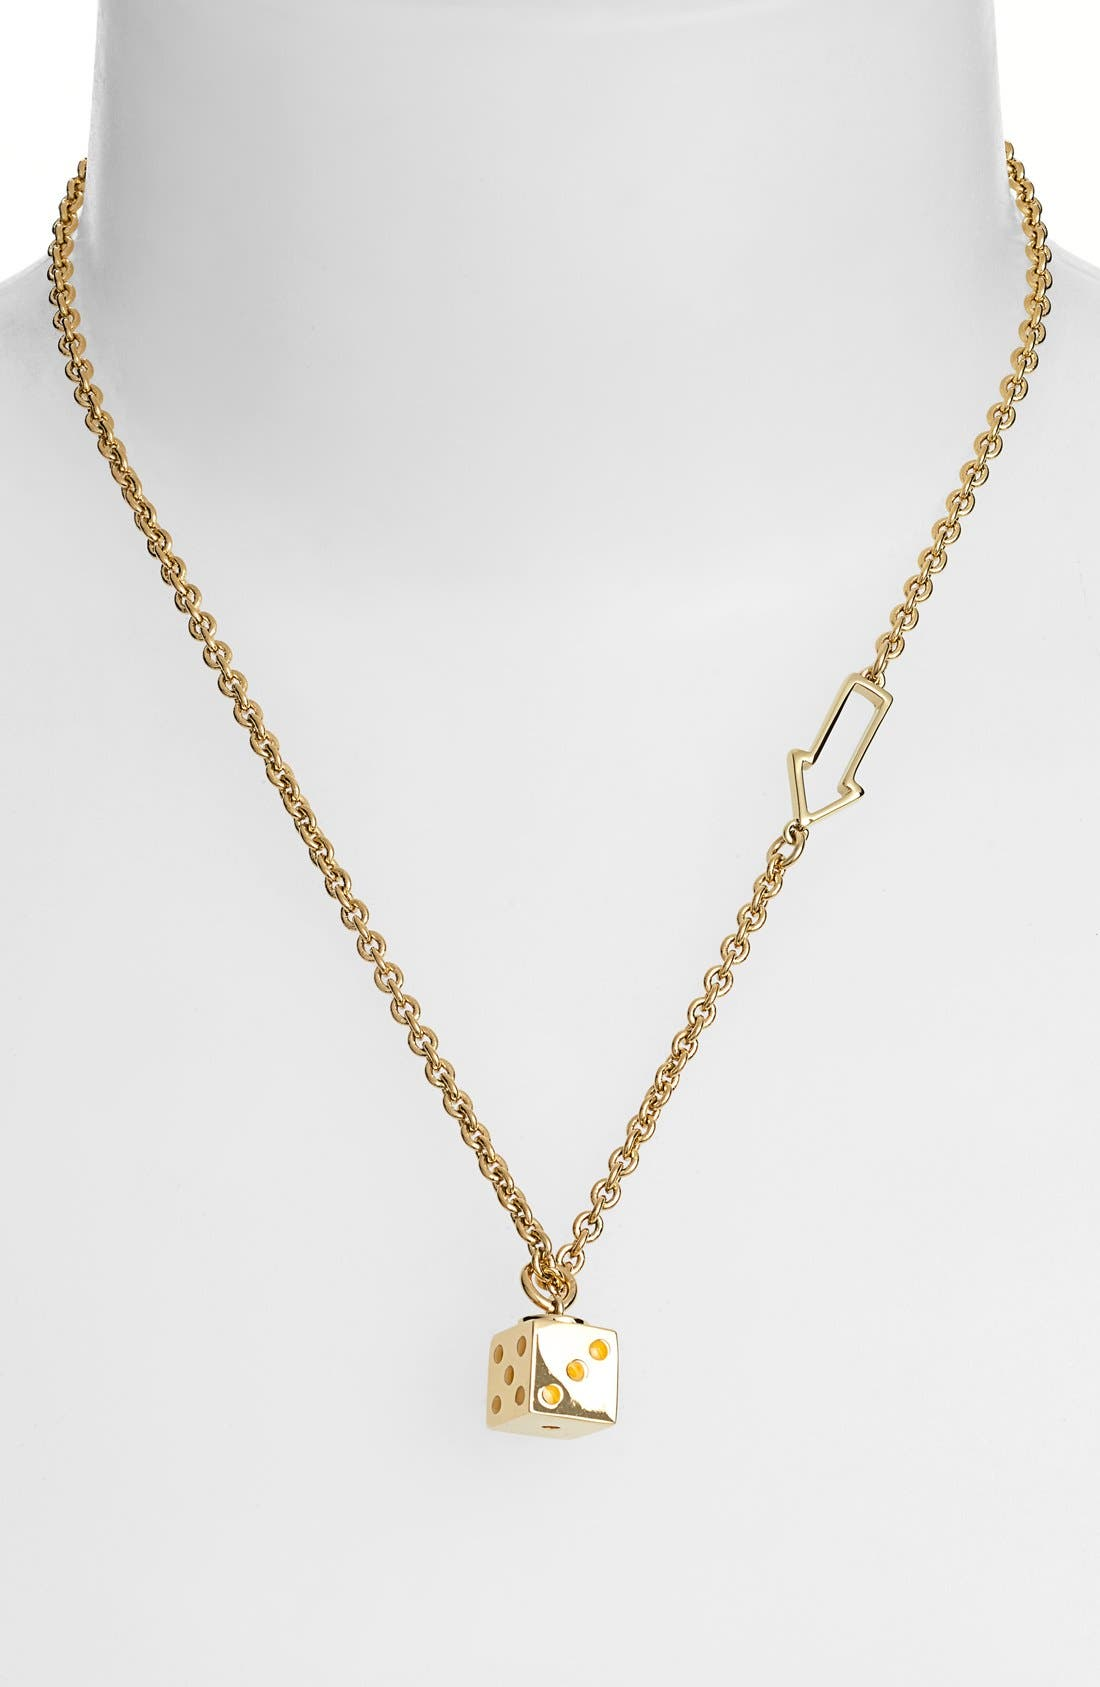 Main Image - MARC BY MARC JACOBS 'Dicey' Pendant Necklace